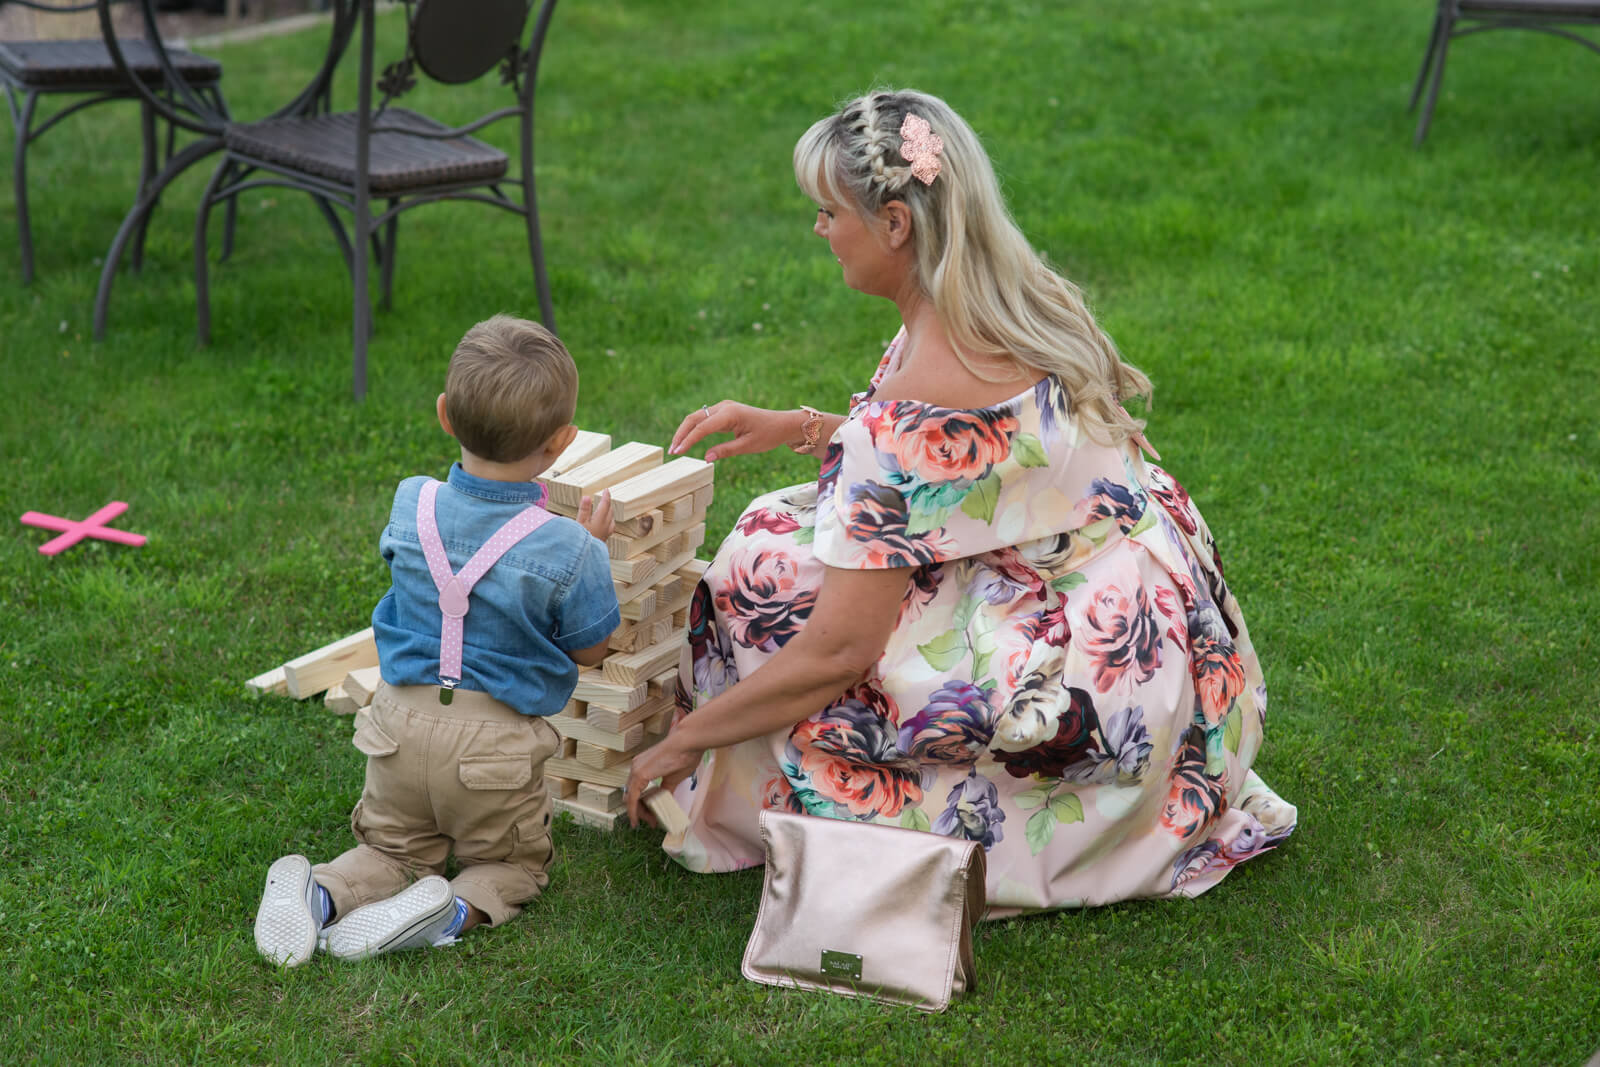 Lady and little boy play jenga lawn games during wedding reception